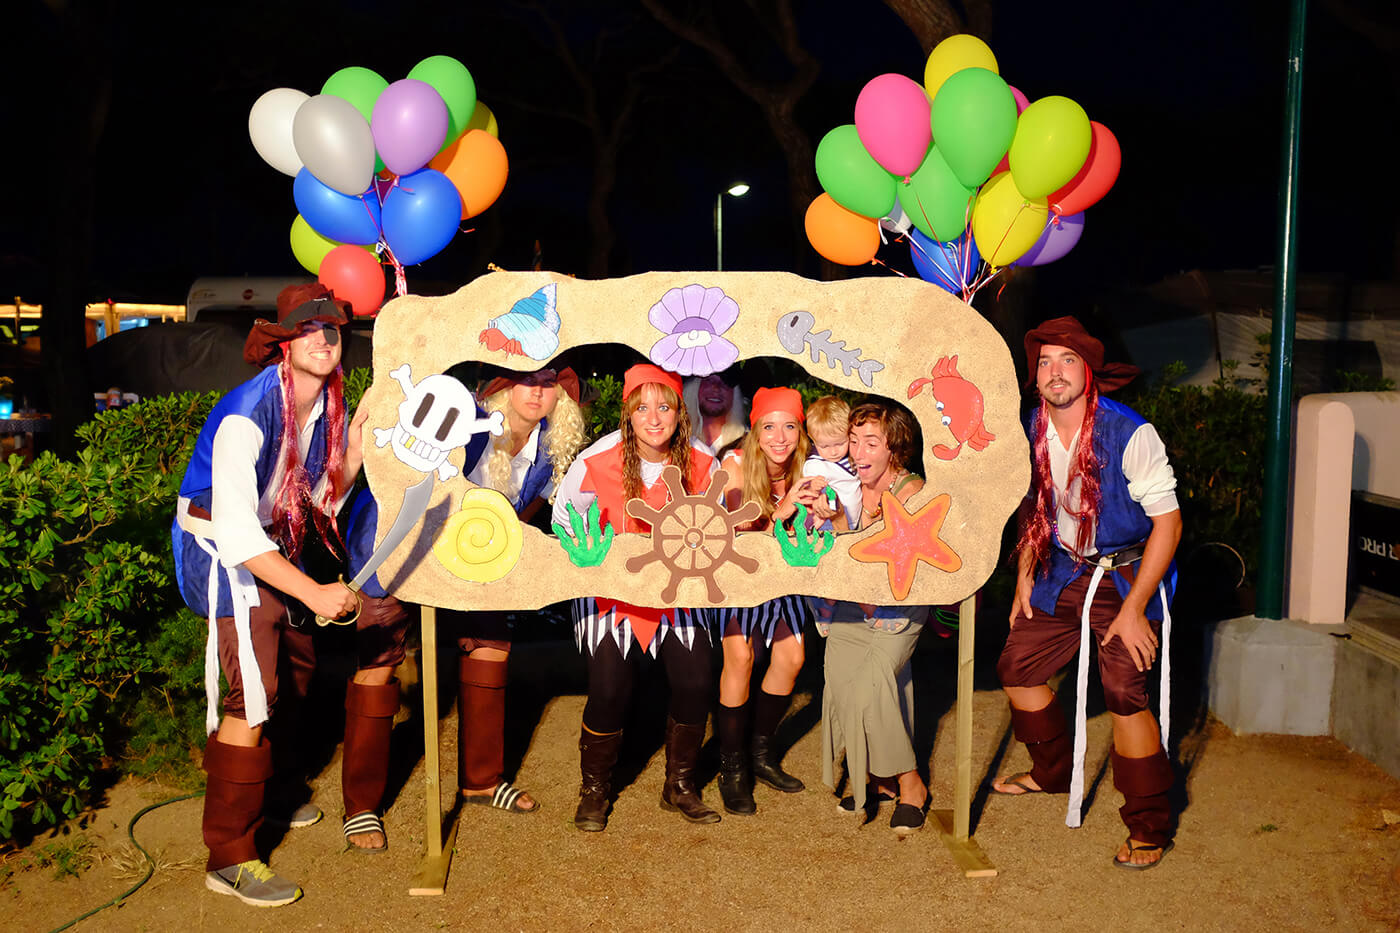 Campsite in Blanes with night parties and costumes